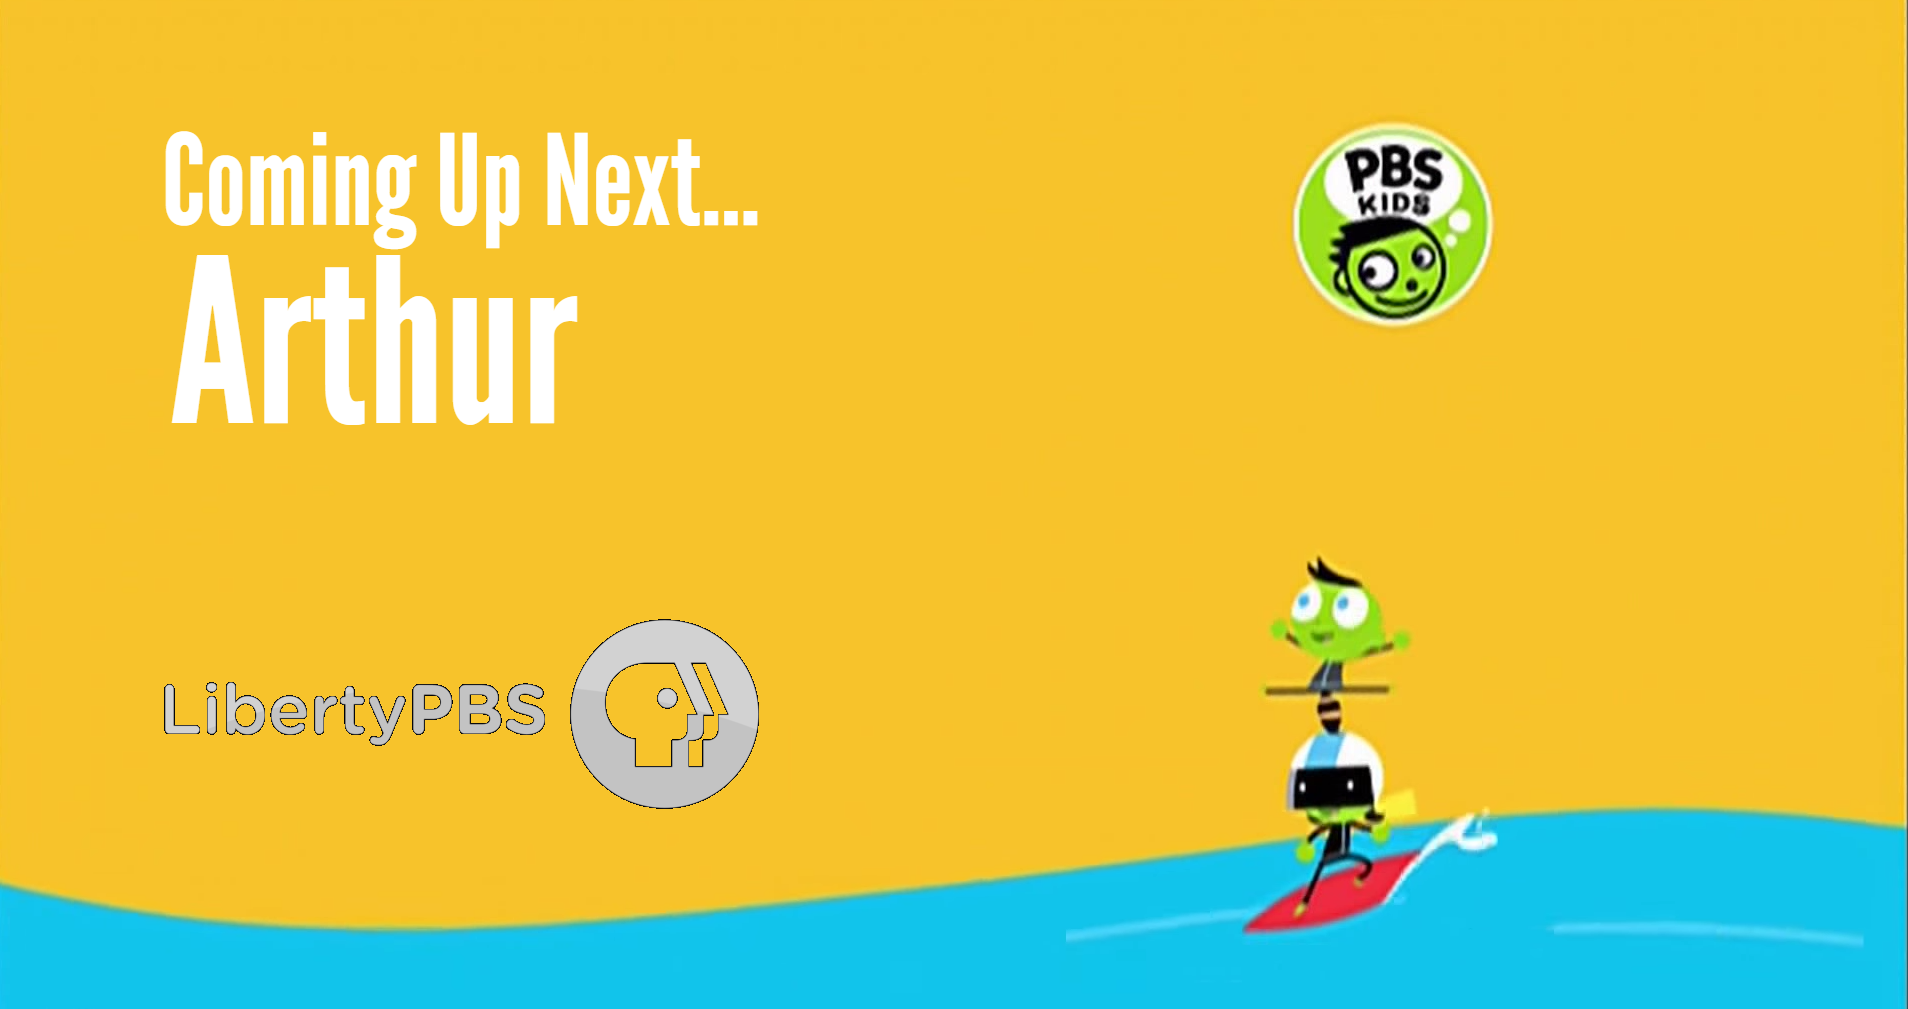 image pbs kids 2015 template png fictionaltvstations wiki